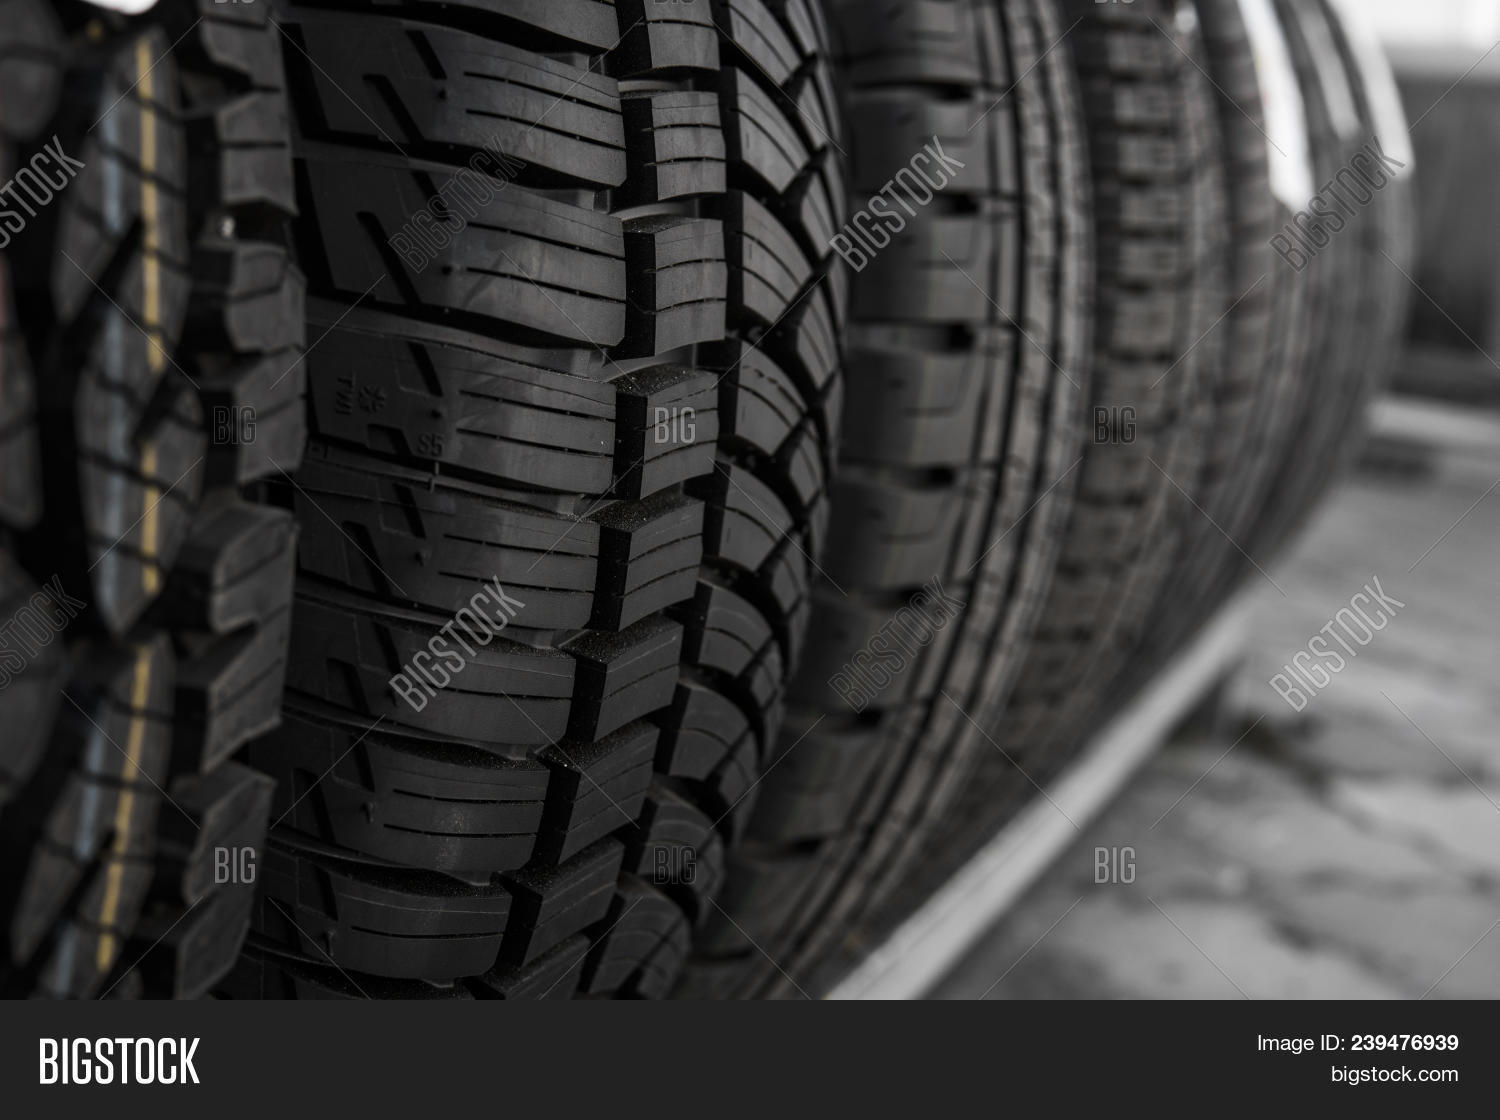 abstract,align,alignment,auto,automobile,background,black,car,change,circle,clean,closeup,construction,control,dark,design,detail,equipment,grip,handling,heap,horizontal,macro,many,new,nobody,object,pattern,product,protector,rain,roll,round,rubber,safety,stability,stack,store,strip,summer,texture,tire,transport,transportation,travel,tread,tyre,vehicle,wheel,winter